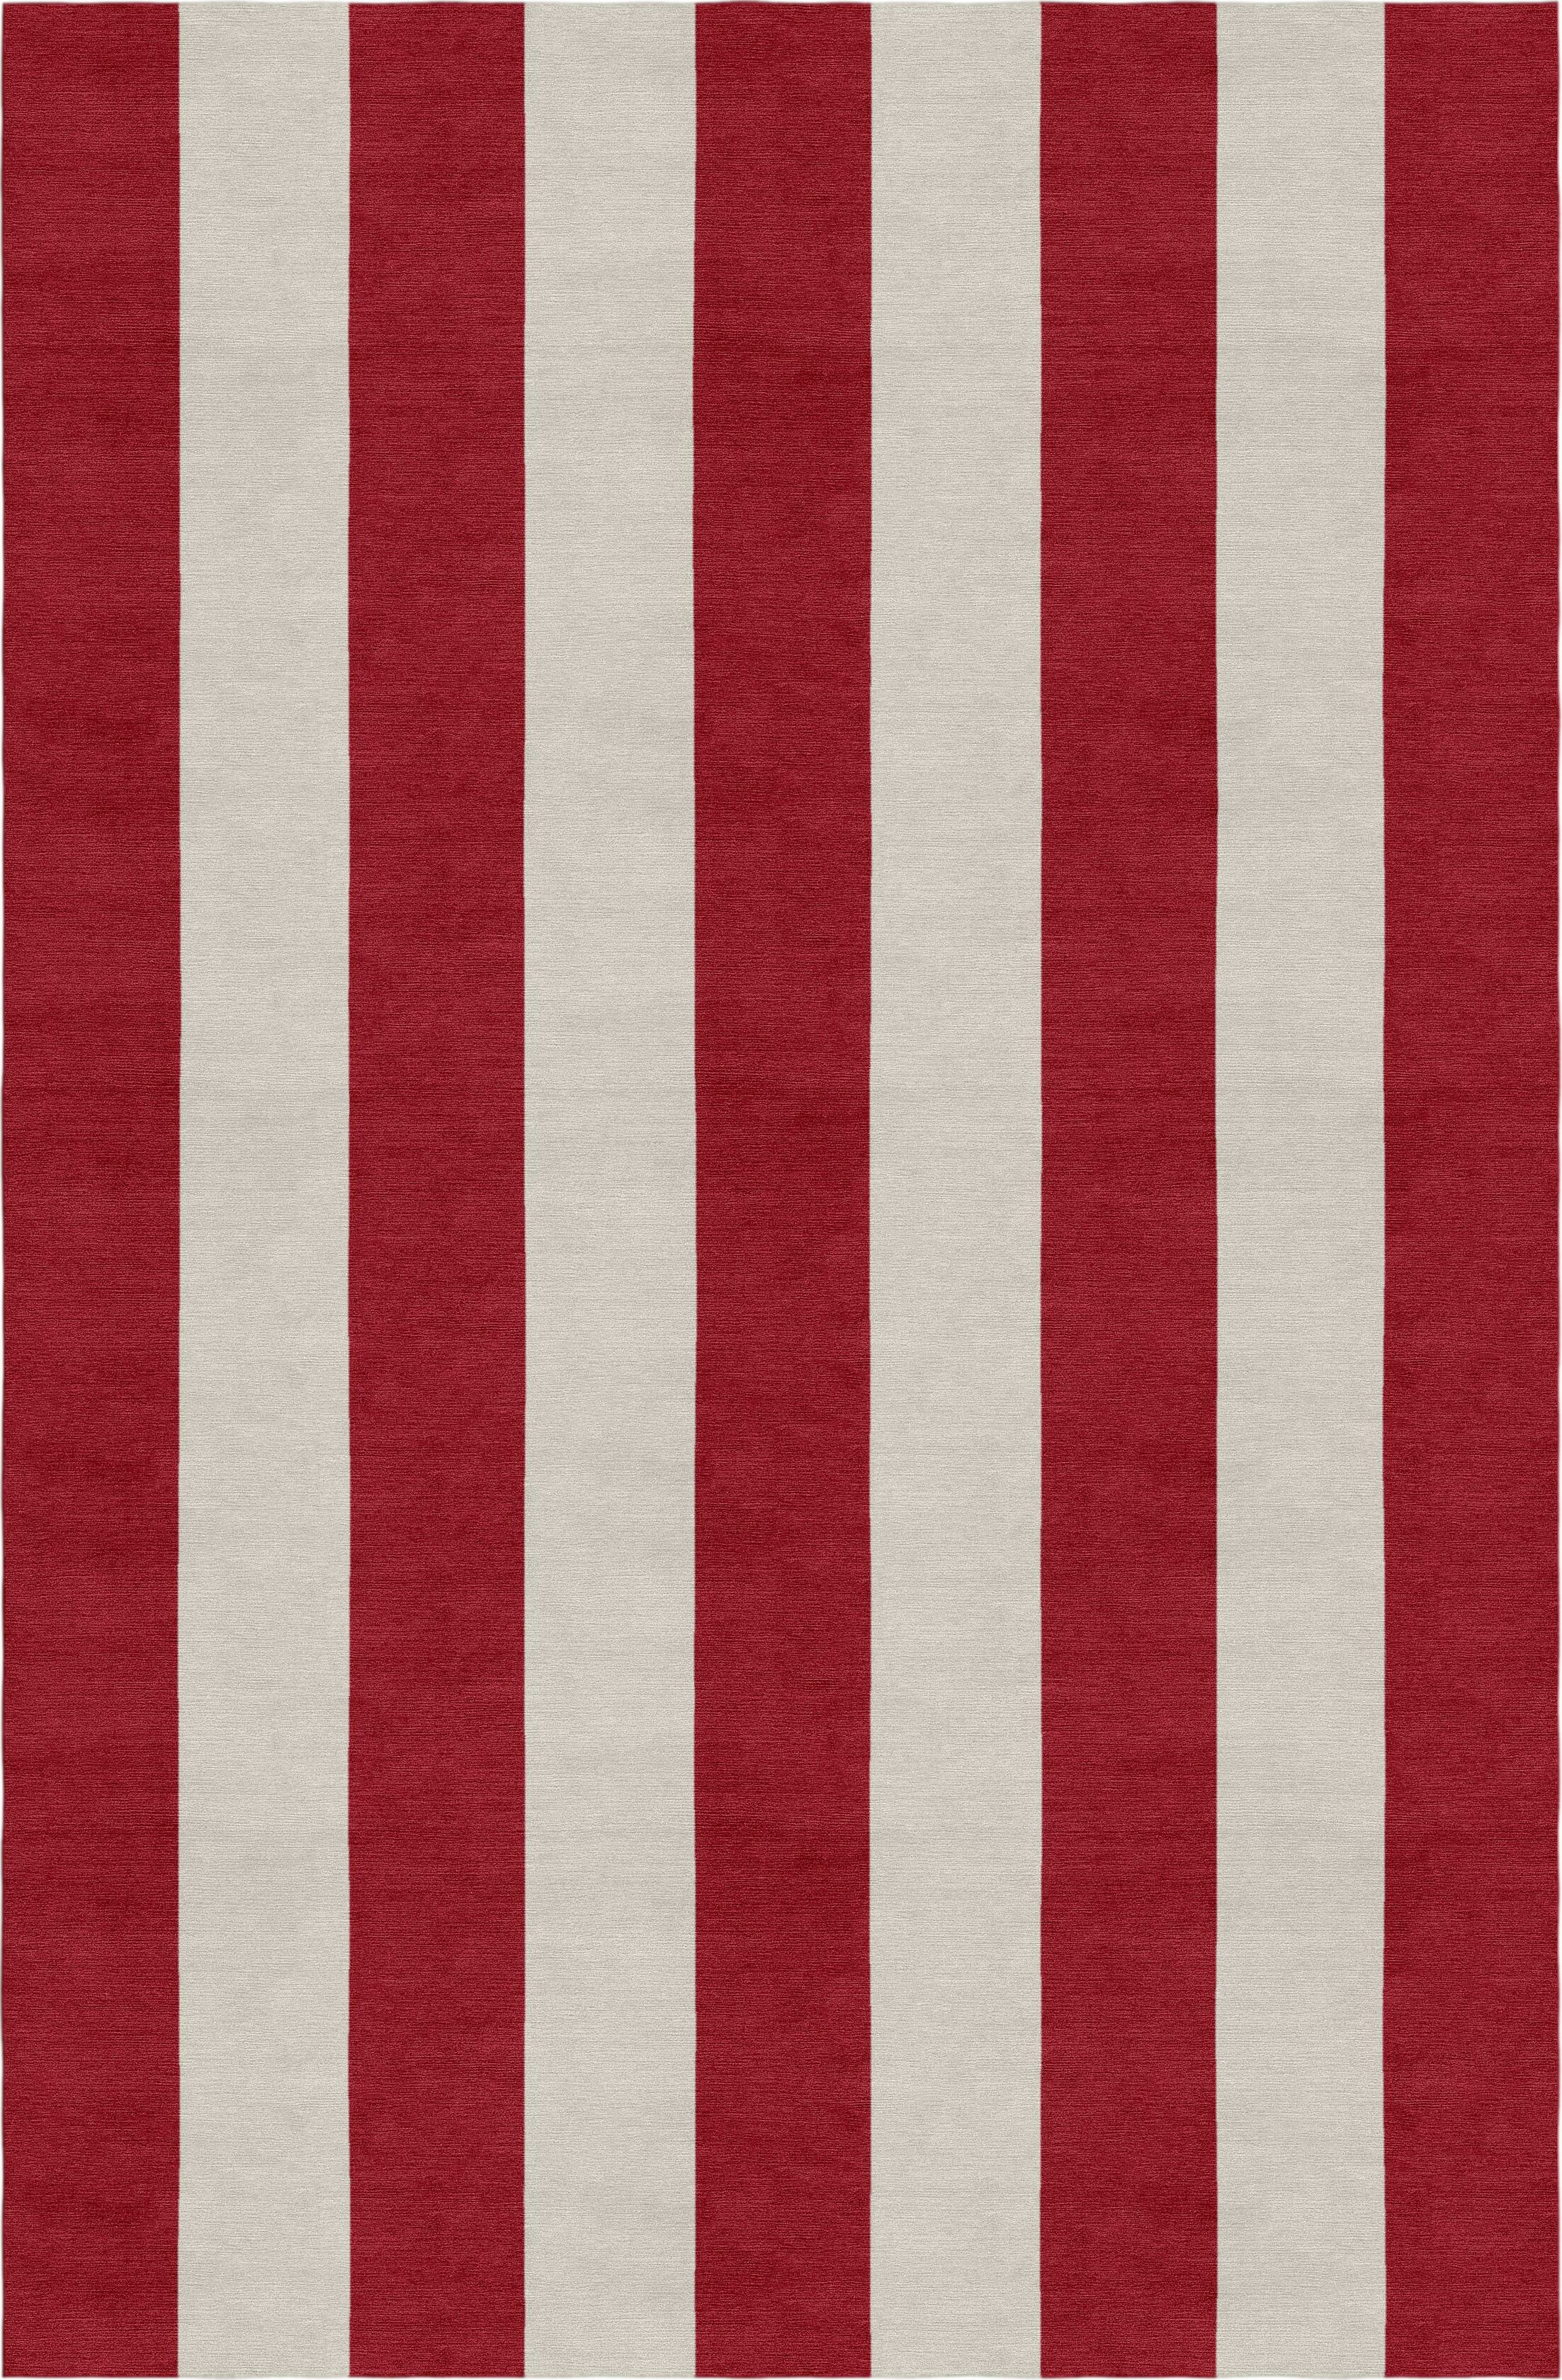 Claverton Stripe Hand-Woven Wool Silver/Red Area Rug Rug Size: Rectangle 8' X 10'